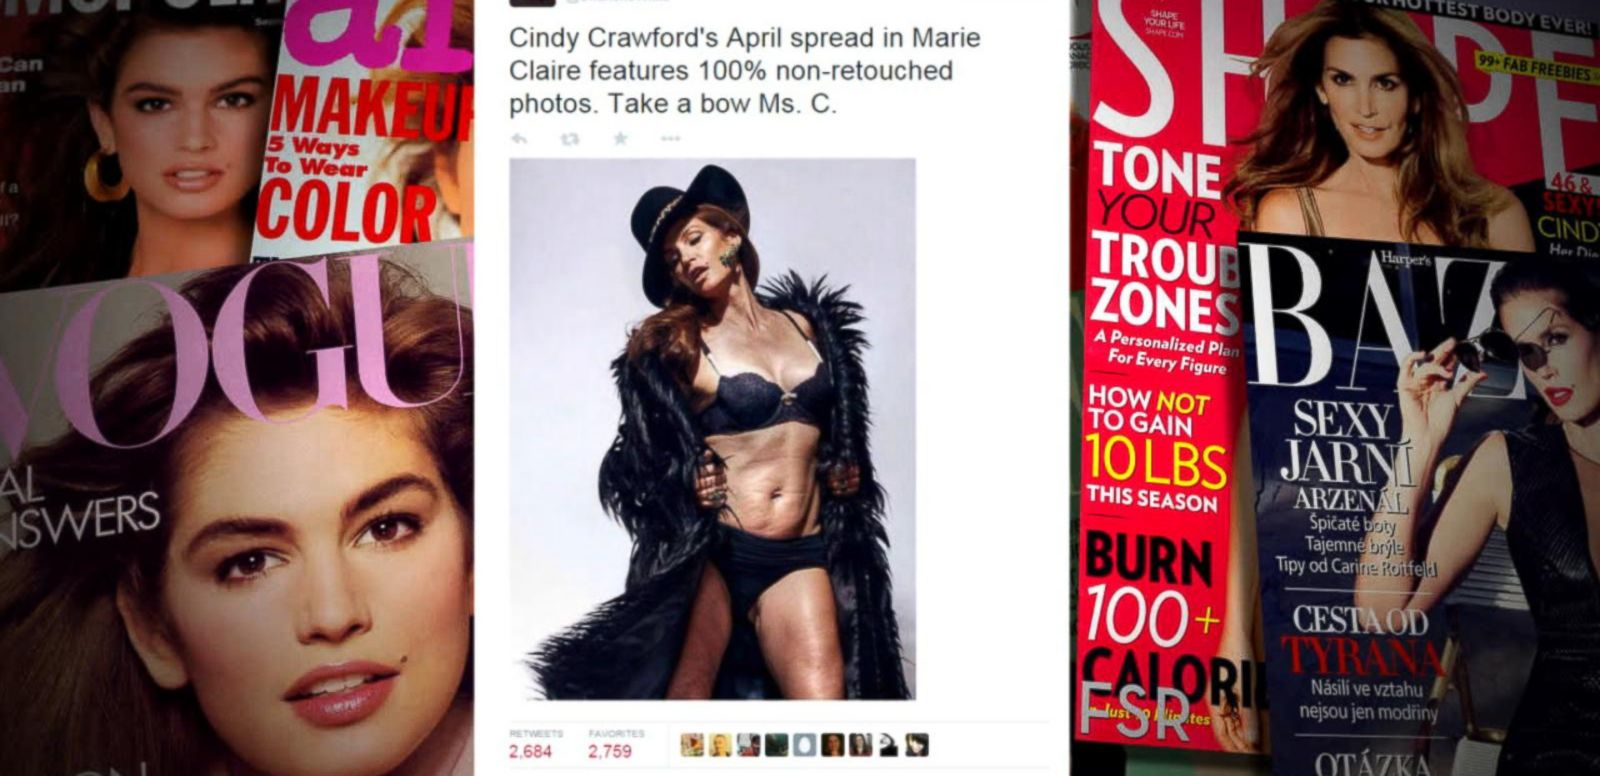 VIDEO: Unaltered Cindy Crawford Photo May Have Been Doctored